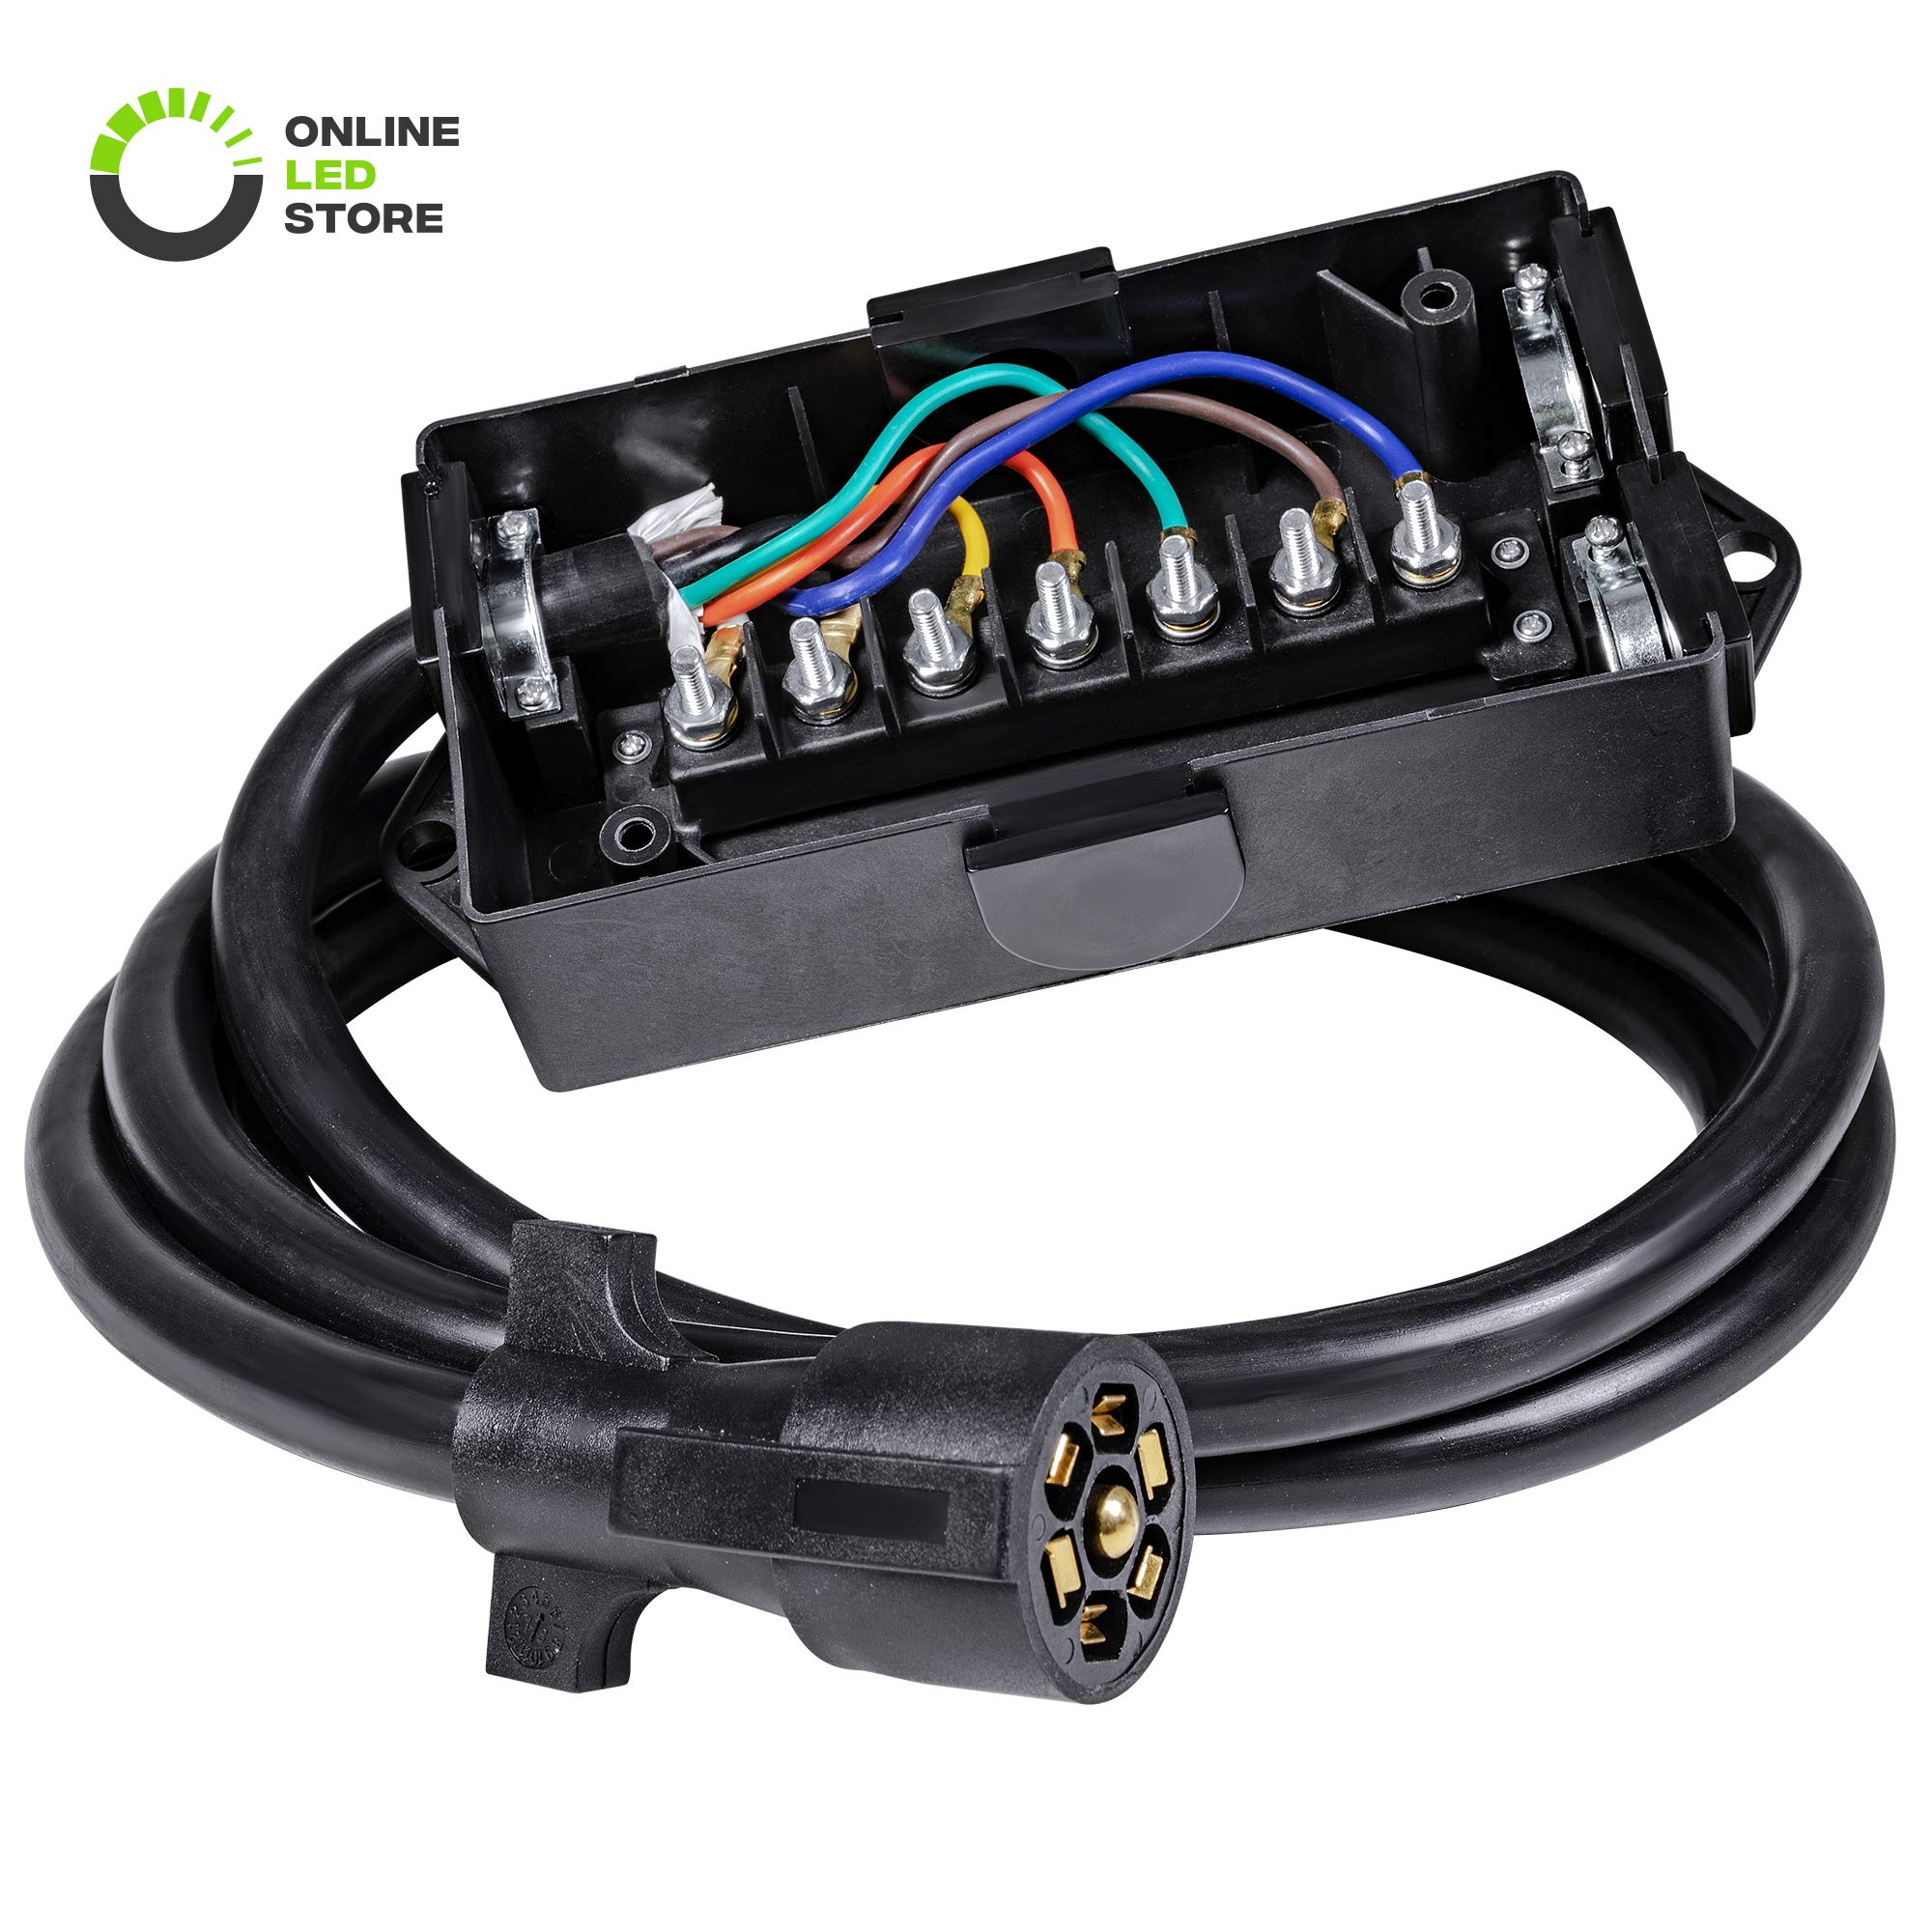 ONLINE LED STORE 7-Port Trailer Wiring Junction Box w/ 8ft Cord [Steel Studs] [Stickers Included] [Weatherproof] Trailer Wire/Cable Connection Box by ONLINE LED STORE